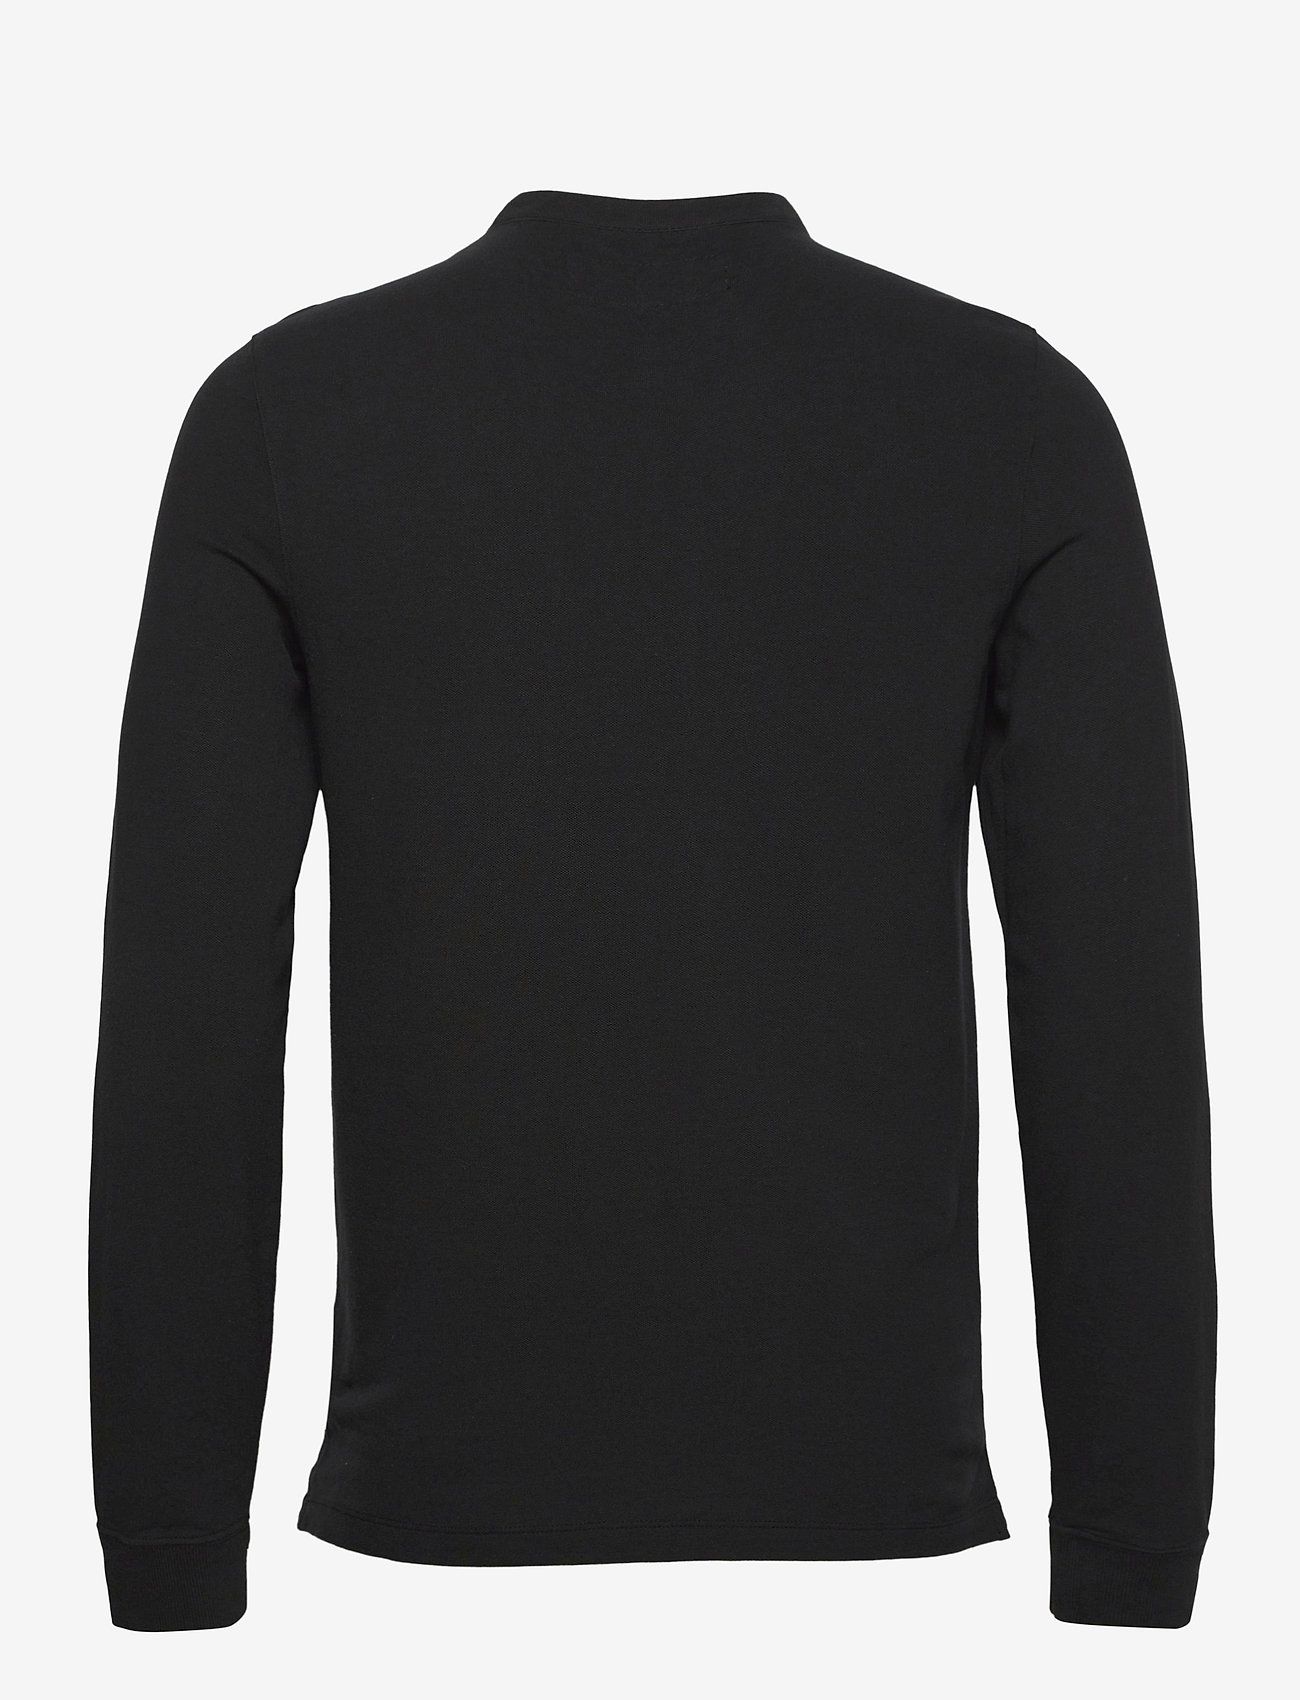 Abercrombie & Fitch - ANF MENS KNITS - half zip - black - 1